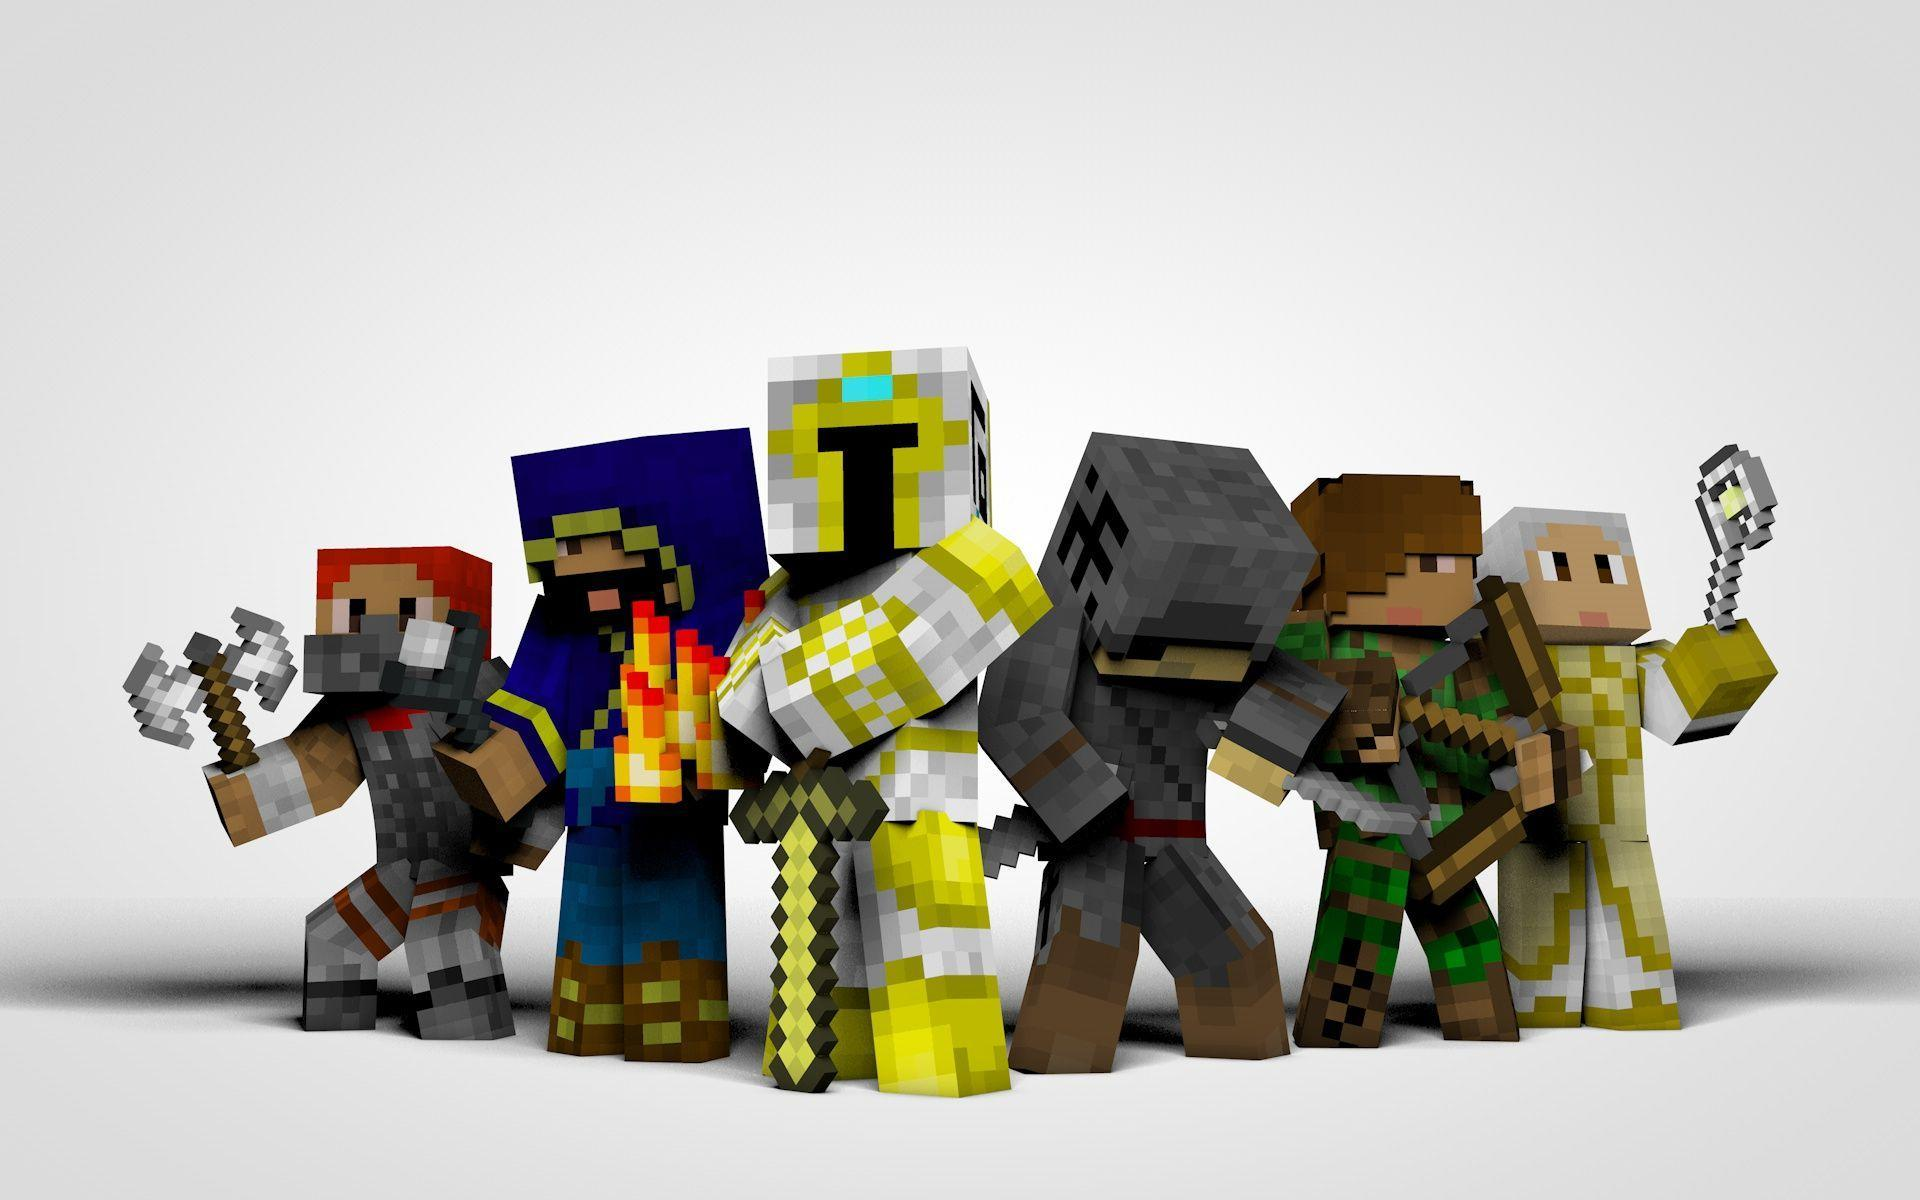 Minecraft Skin Wallpapers - Top Free Minecraft Skin Backgrounds